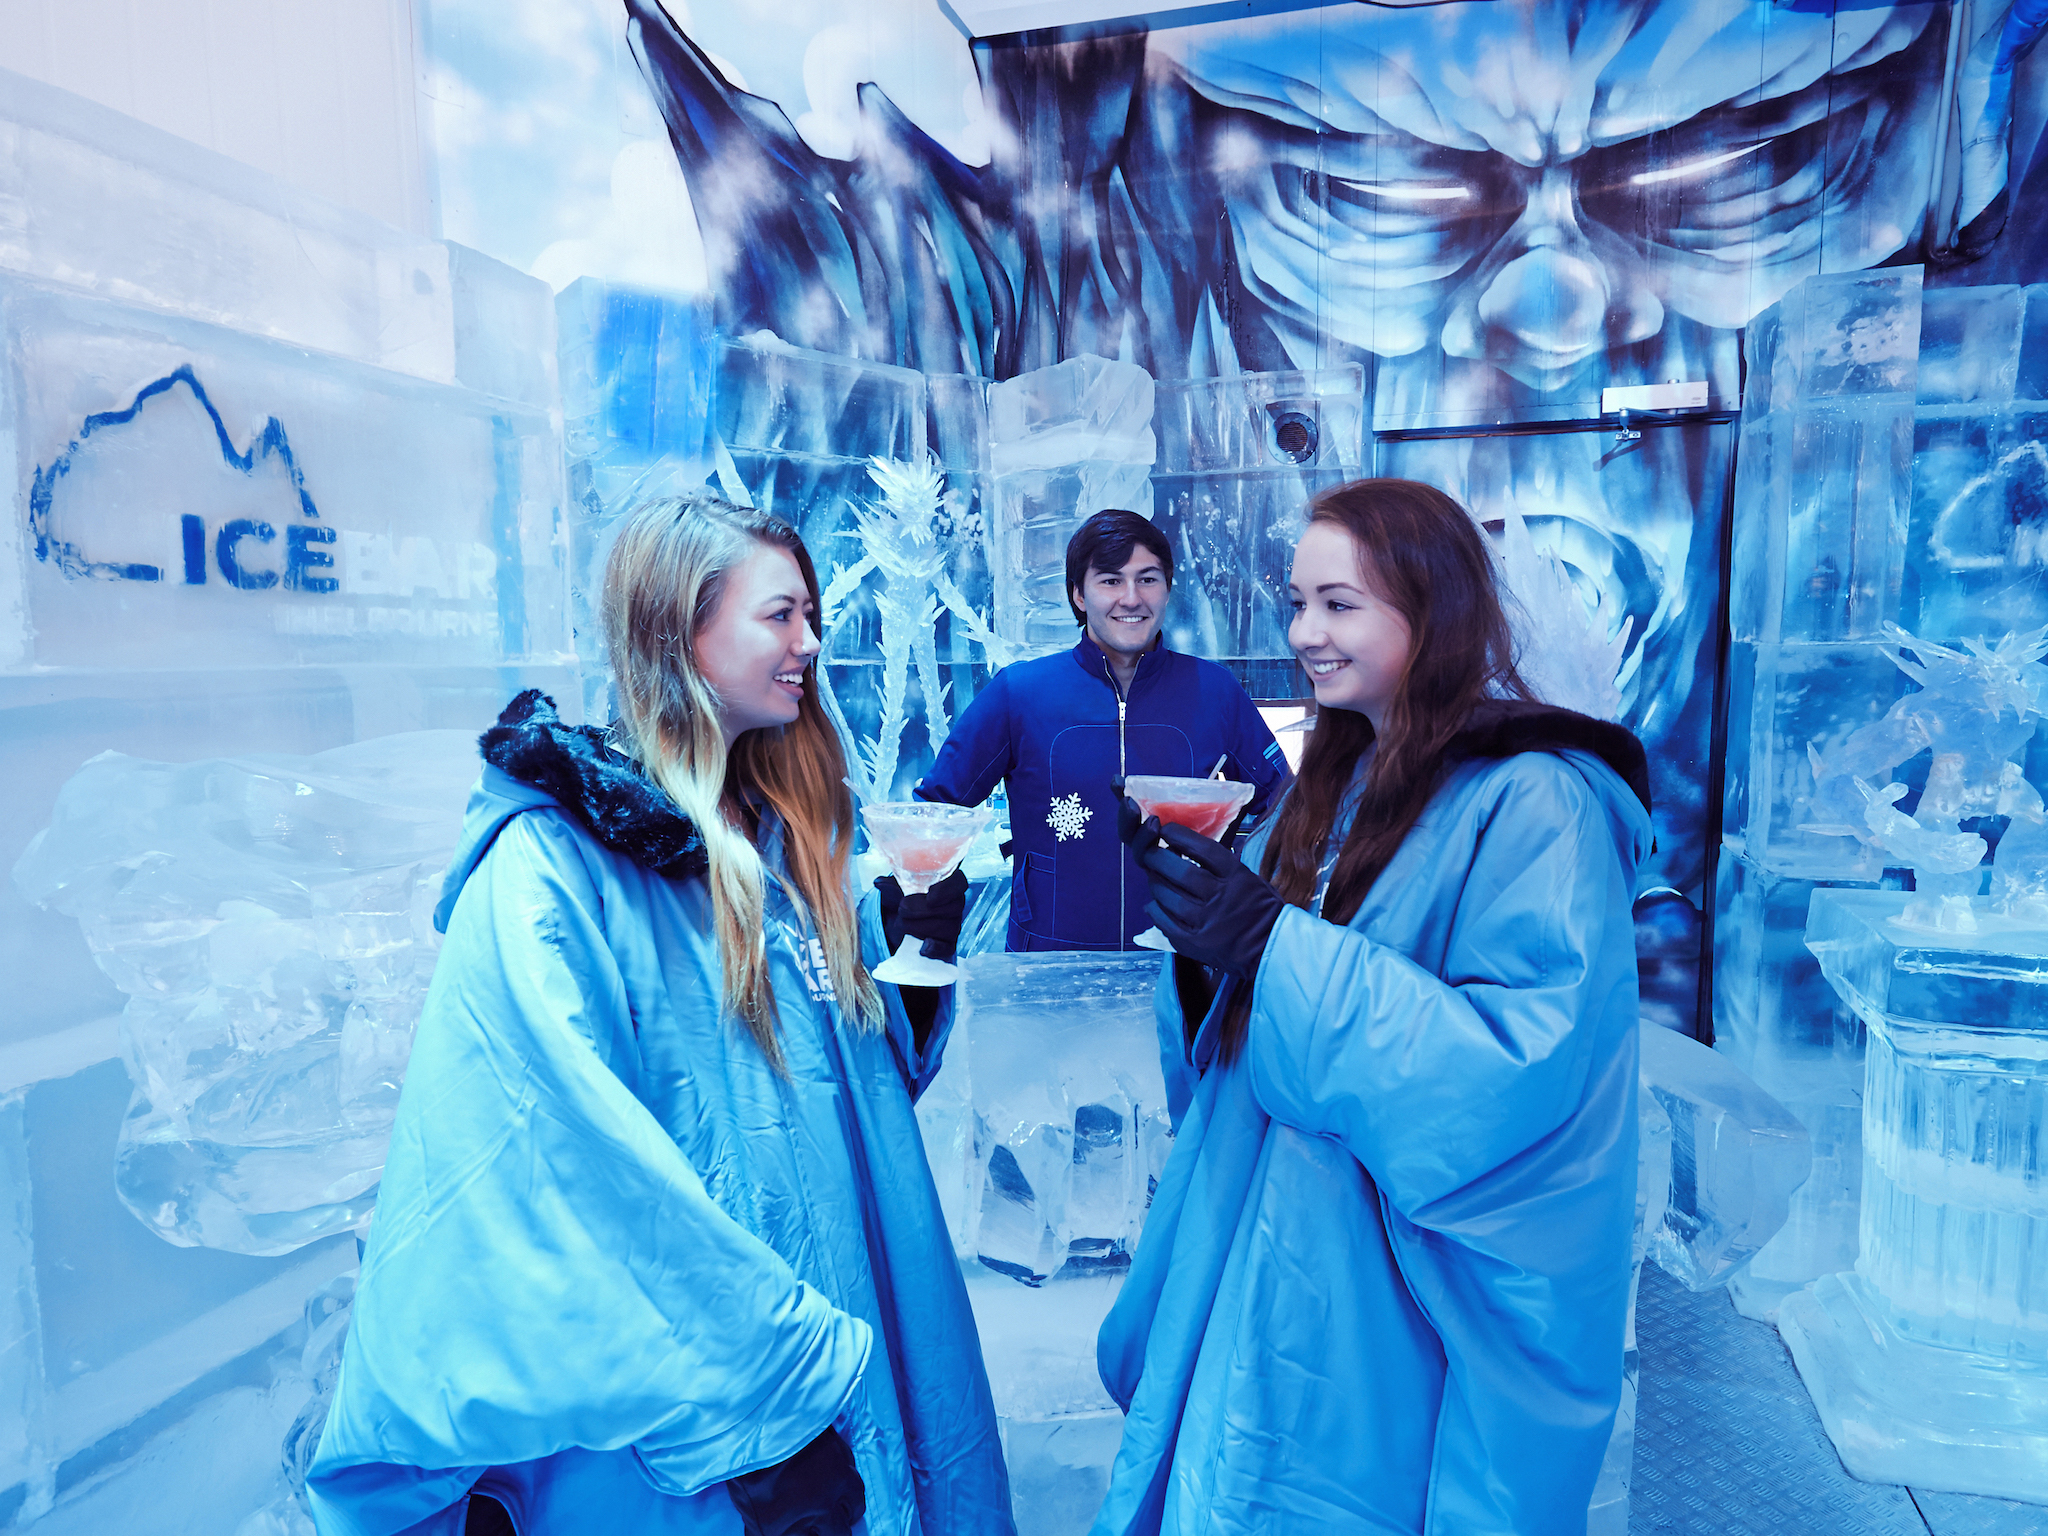 Cool off at Ice Bar